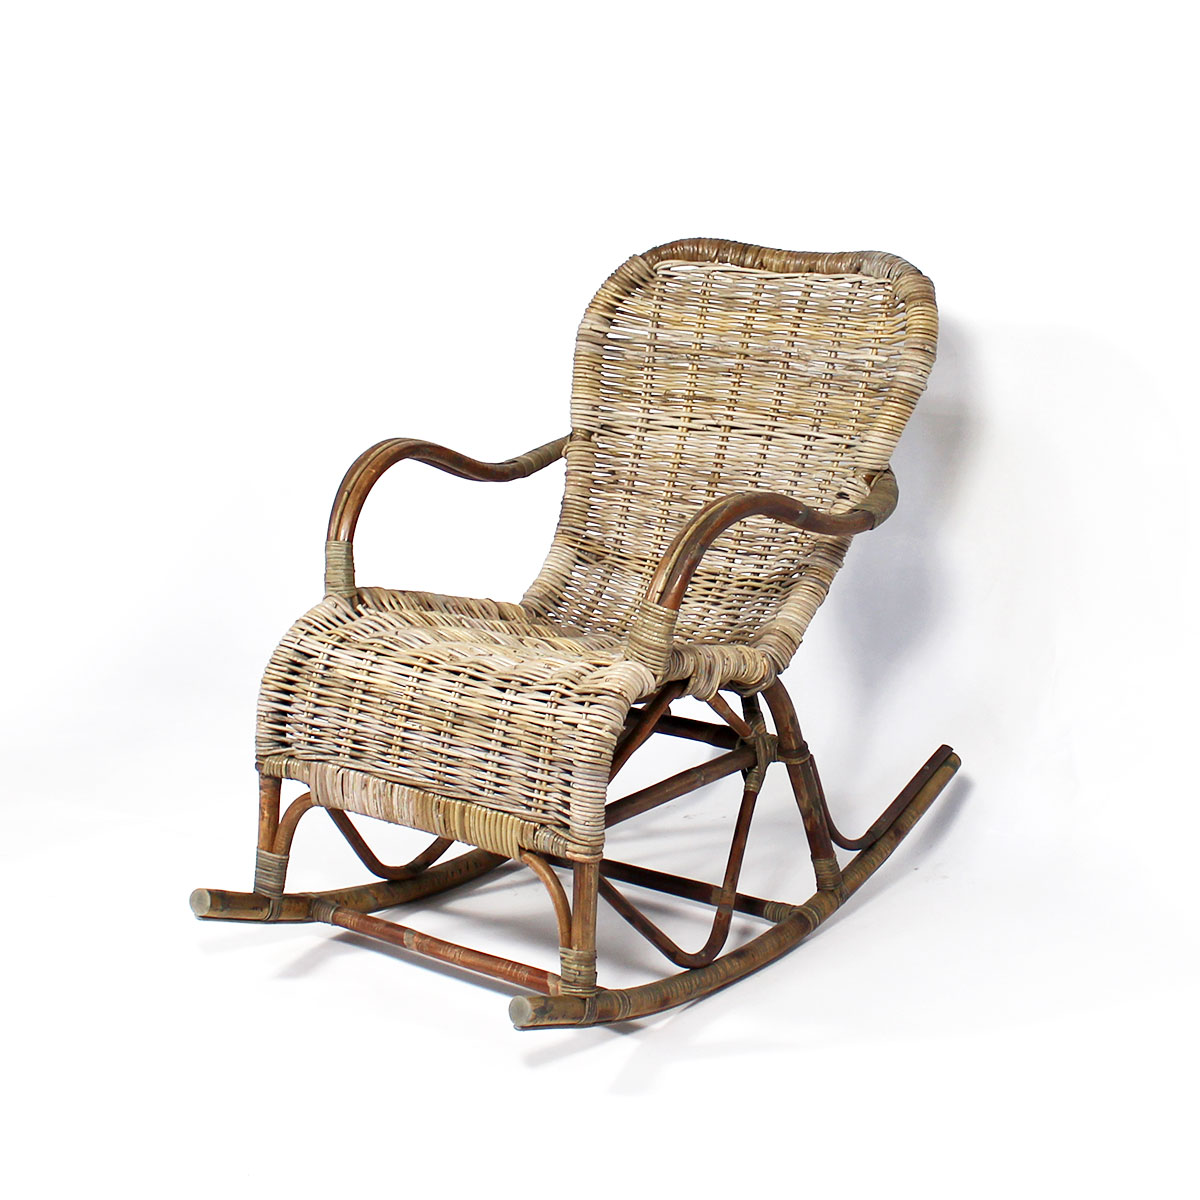 vdl 19 fauteuil rocking chair